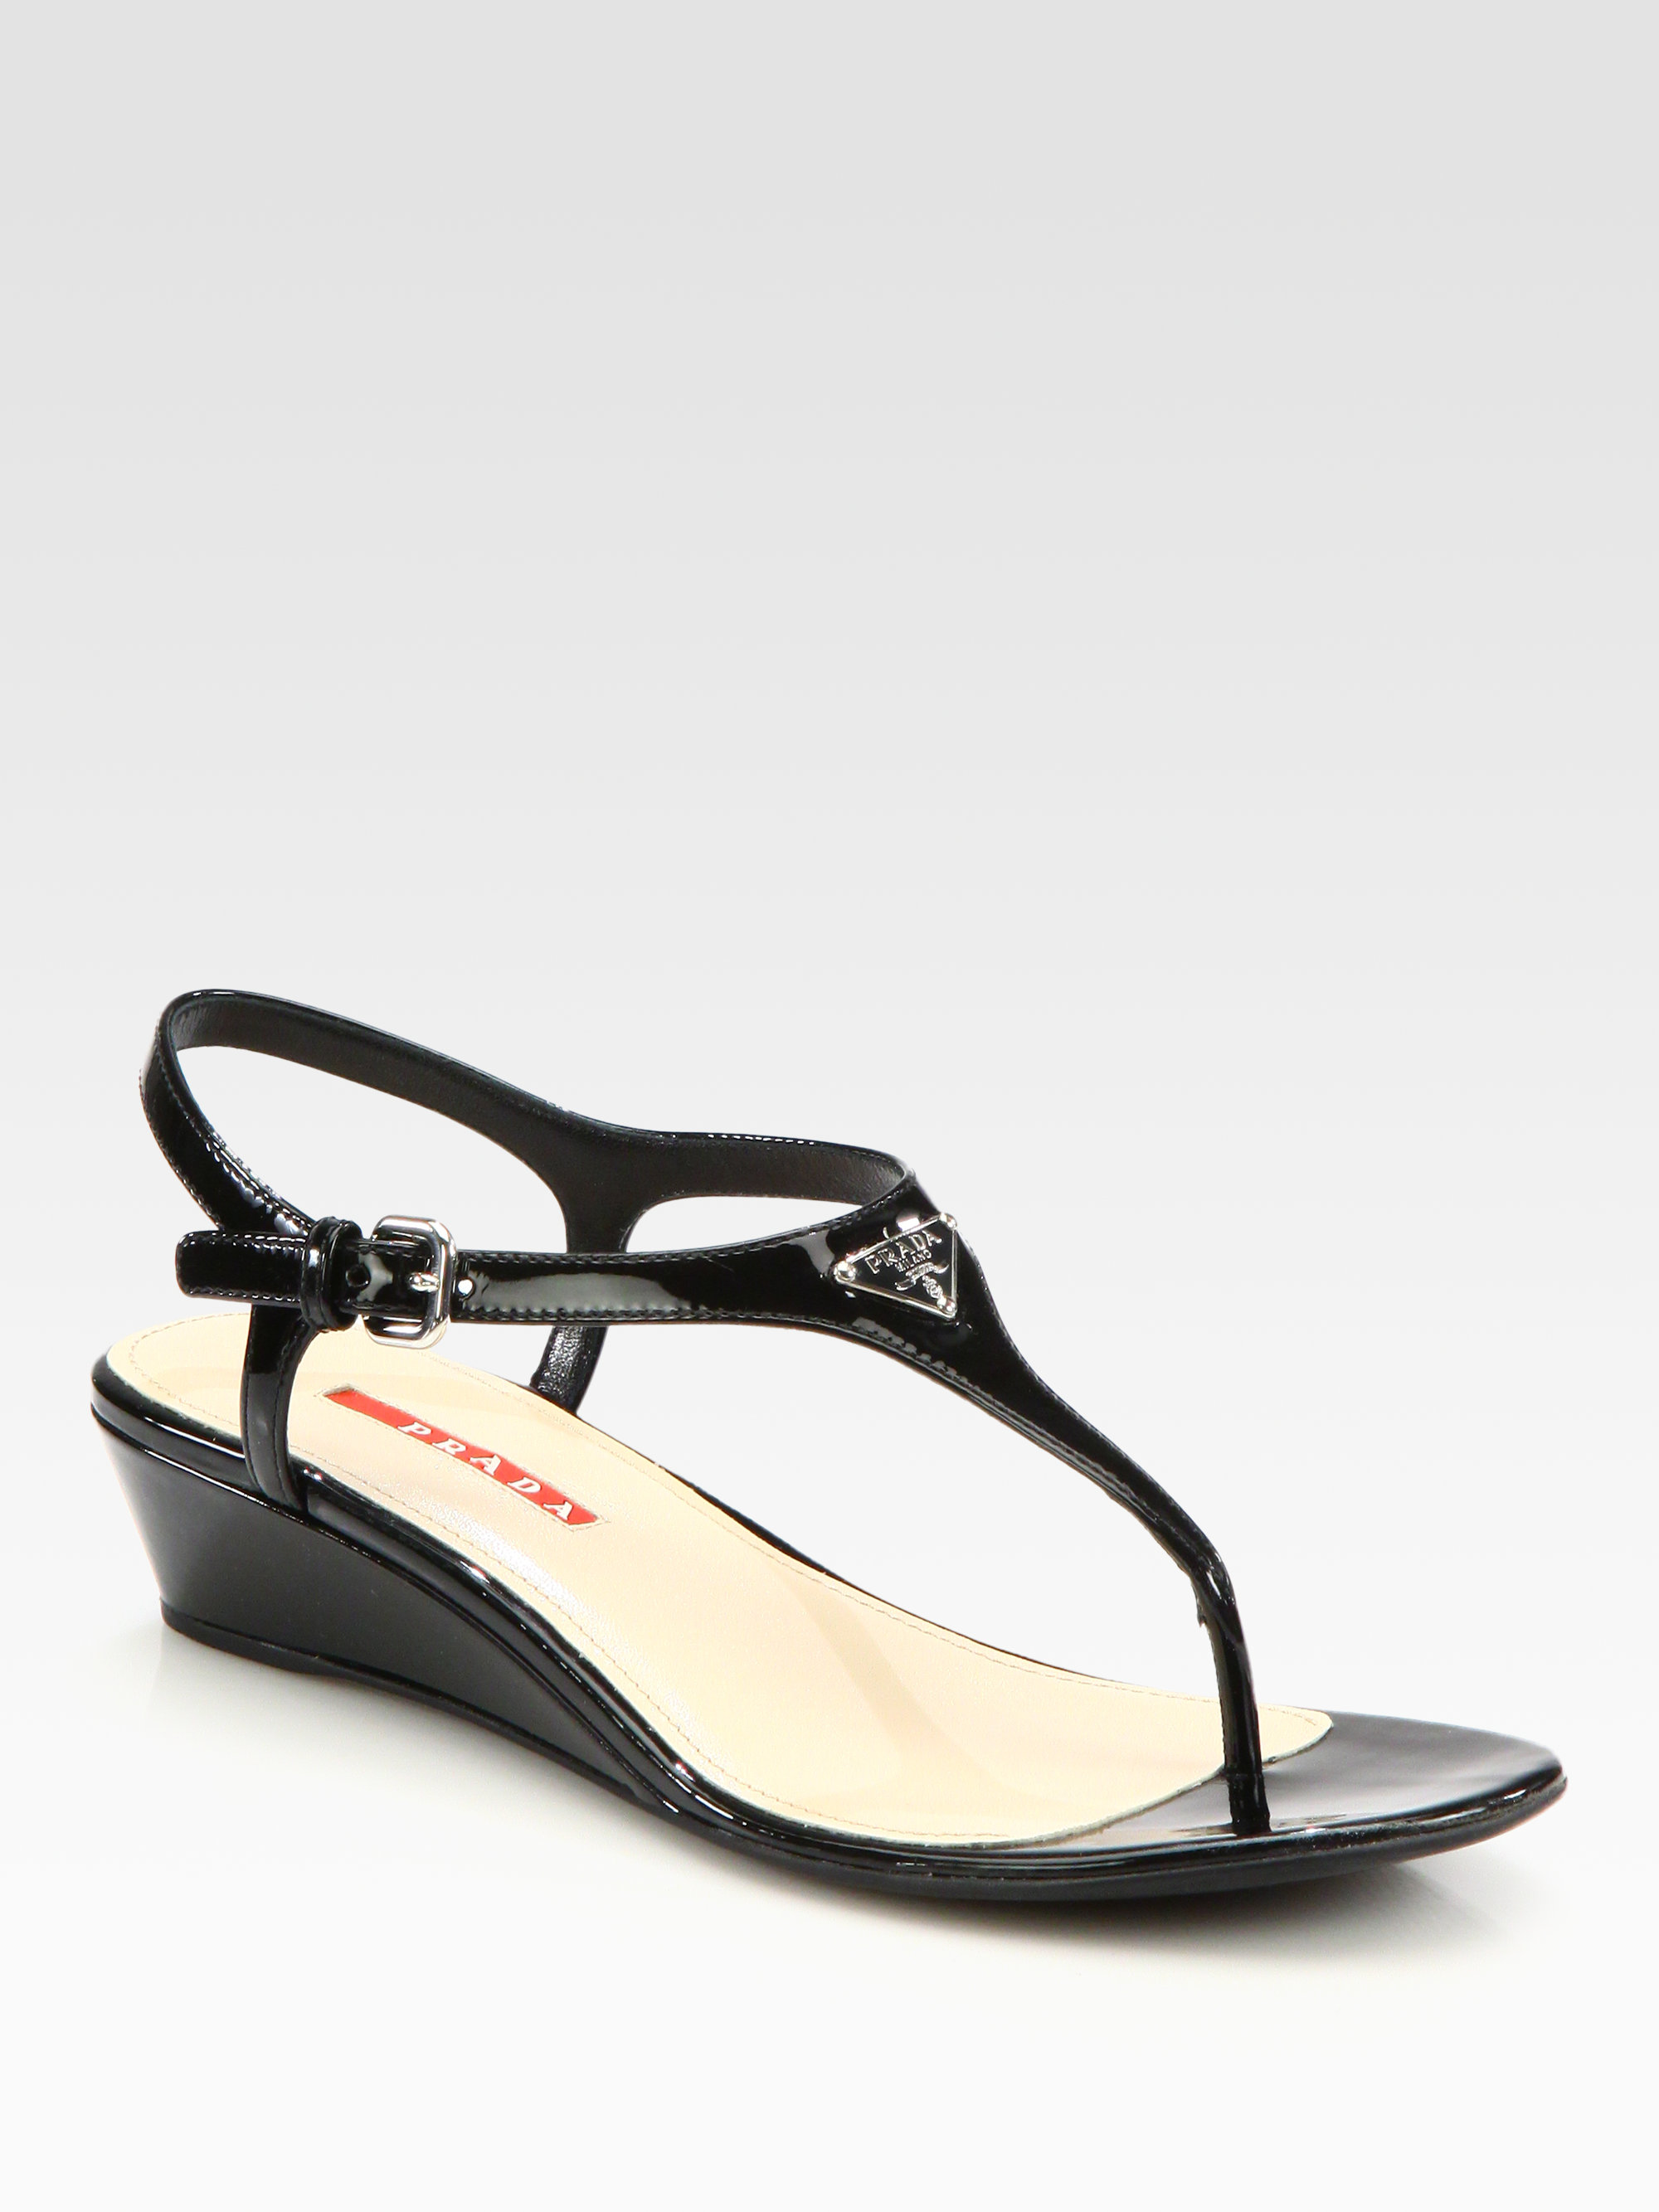 Prada Patent Leather Wedge Sandals low price fee shipping online outlet locations sale online cheap with paypal EuXyAzse